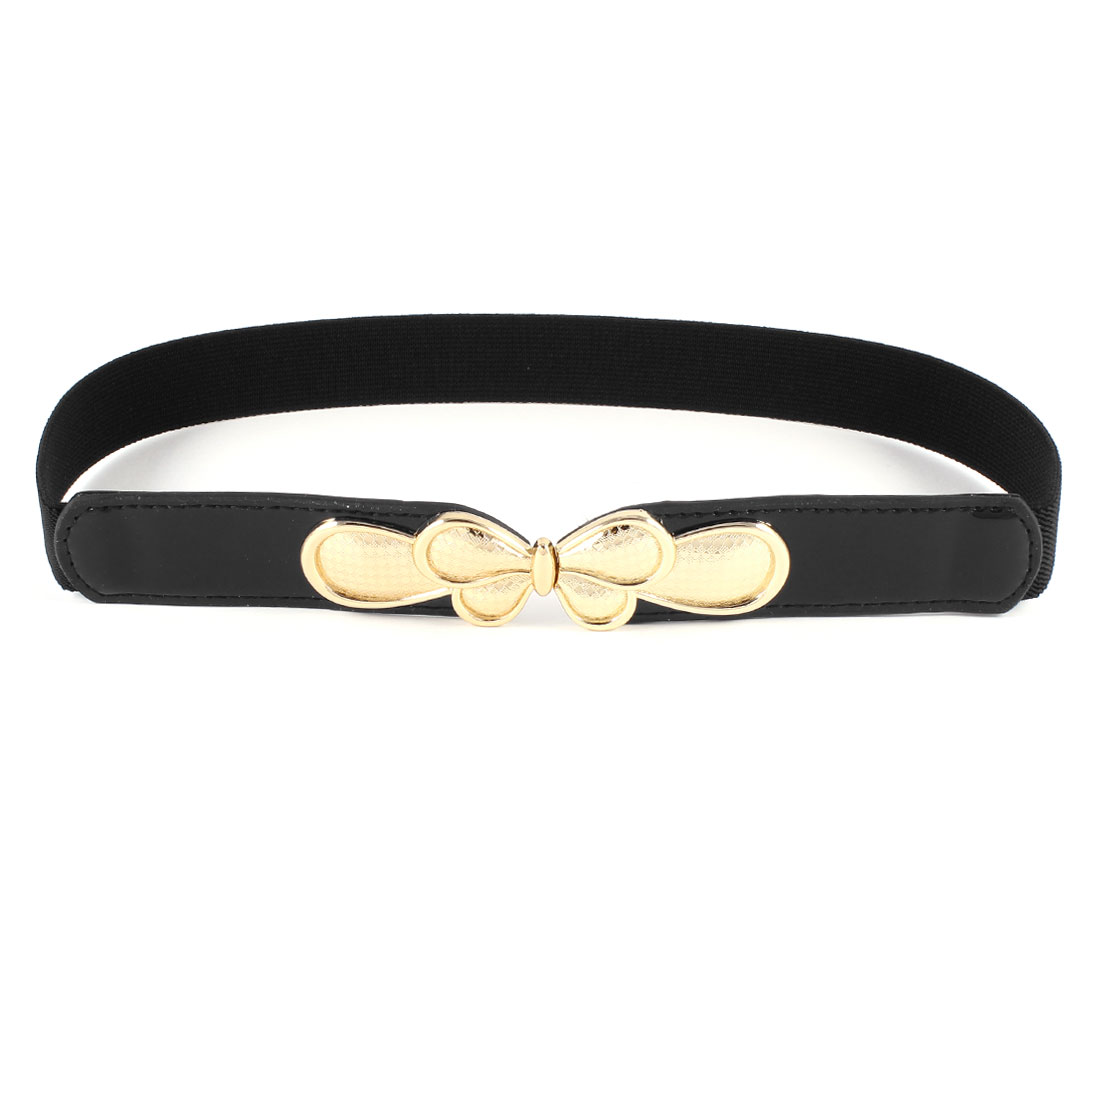 Women Butterfly Interlock Buckle Thin Skinny Waistband Cinch Waist Belt Black